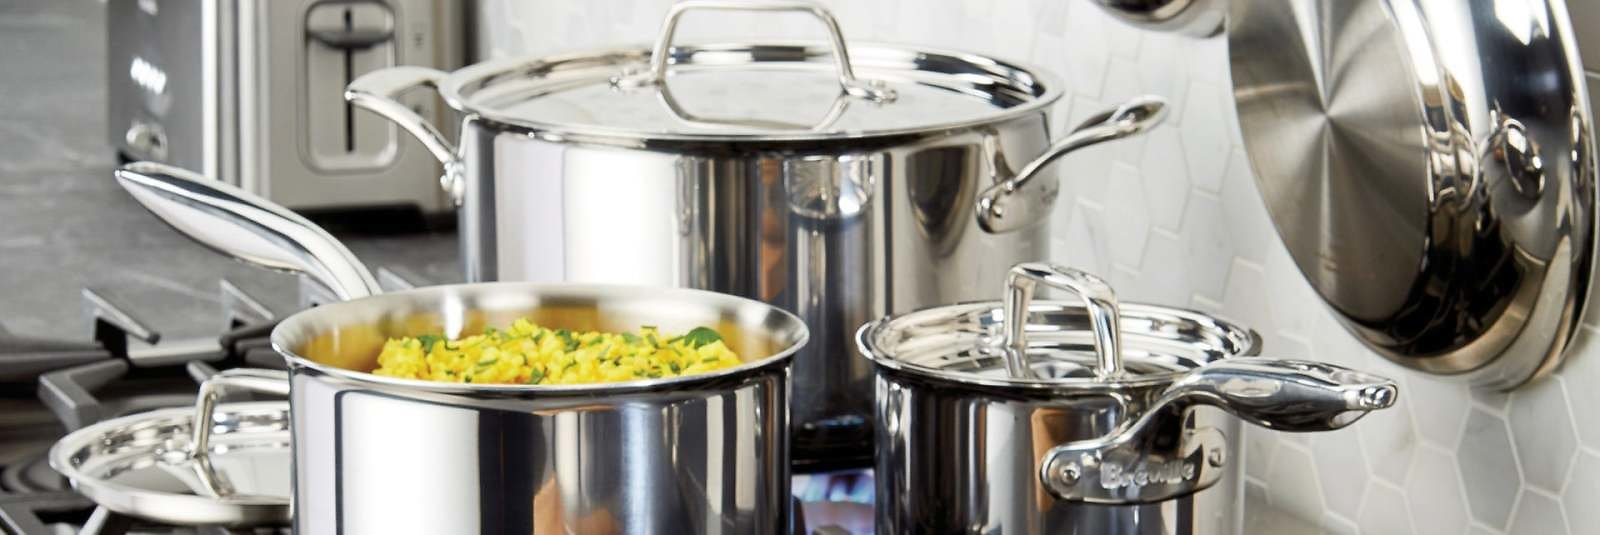 Up to 70% Off Cookware, Bakeware & More Ft Breville